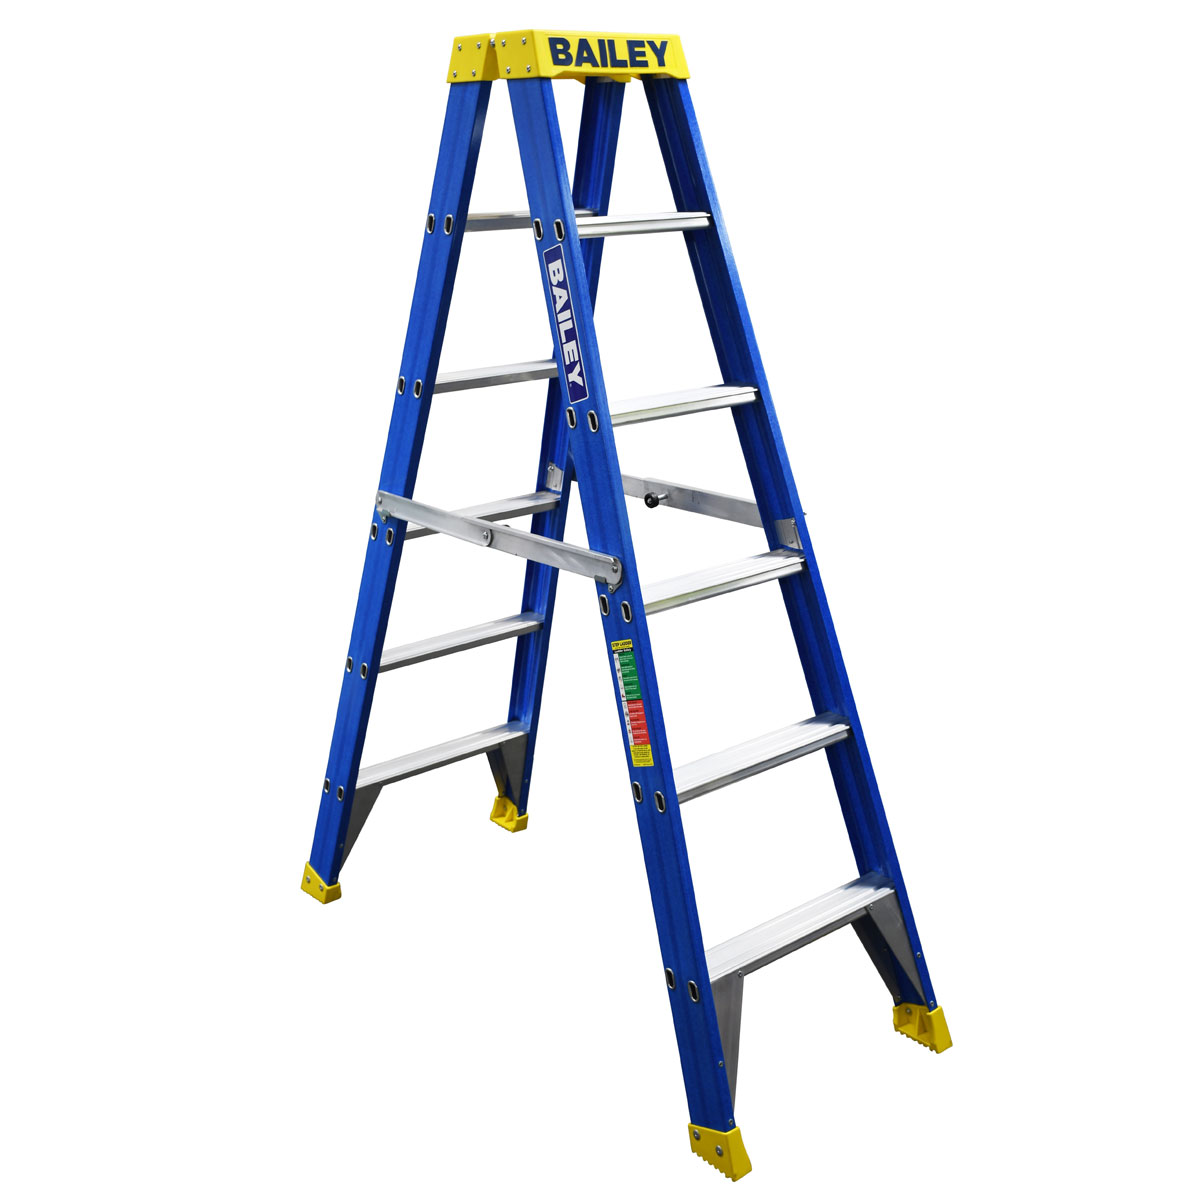 Ladder - Double Sided Fibreglass Bailey Industrial Punchlock 150kg 6-Step 1.8M